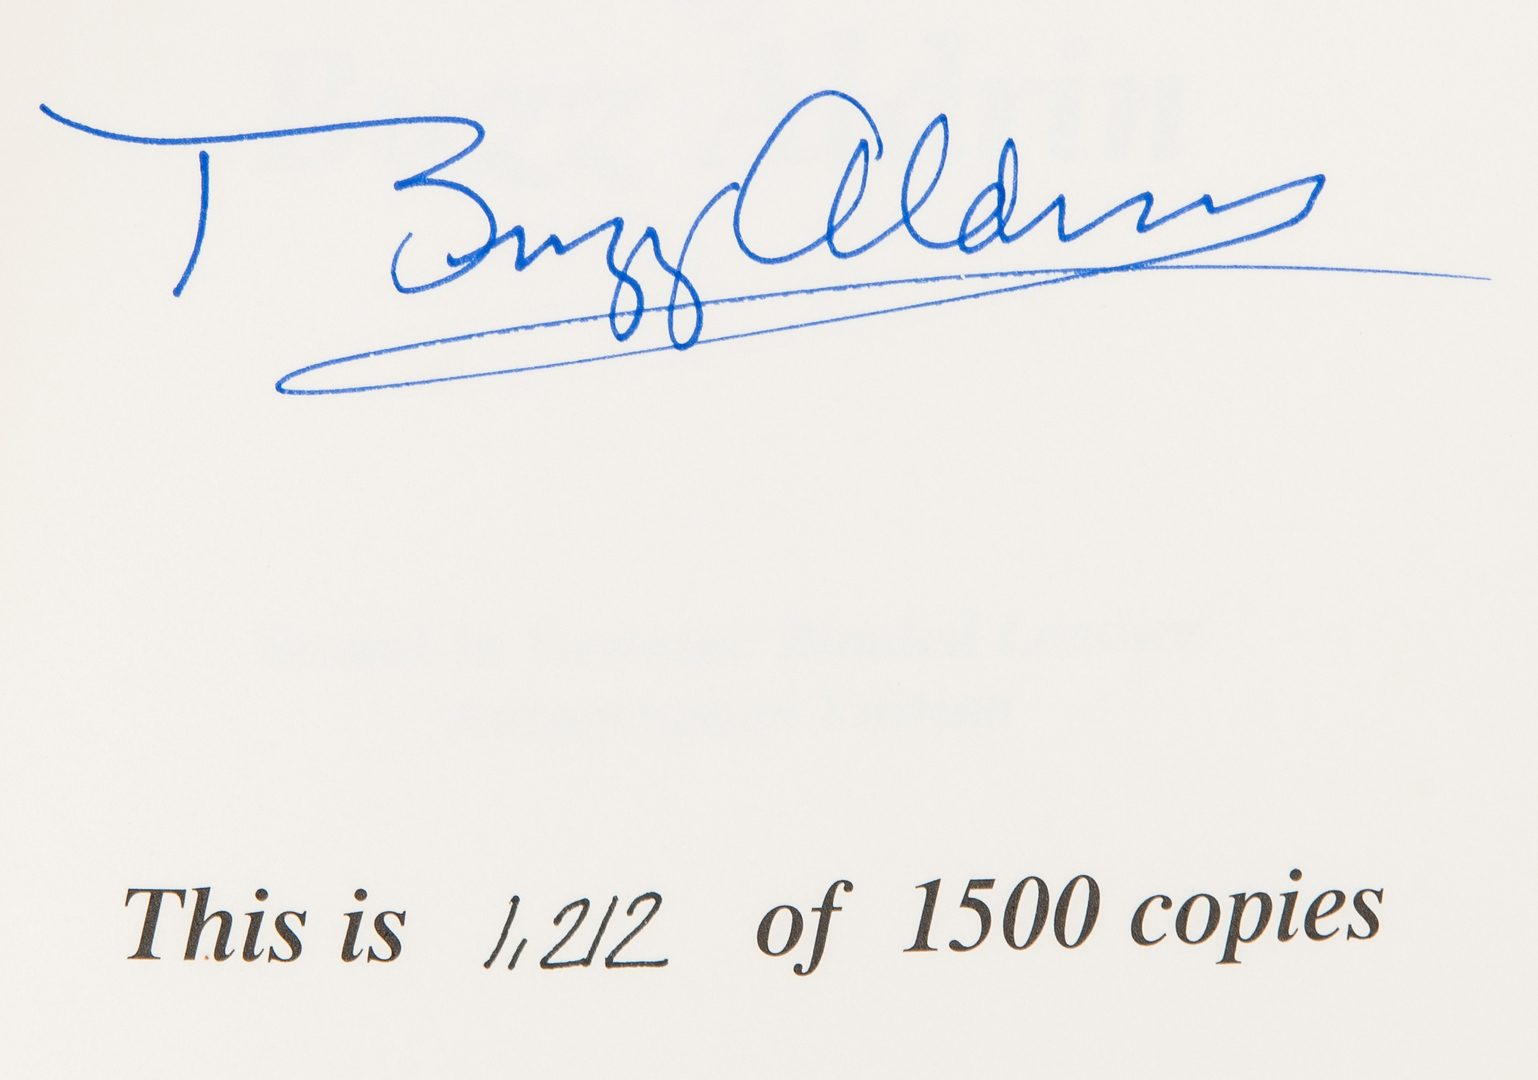 Lot 714: 6 Buzz Aldrin Signed Items, incl. Photo & Books